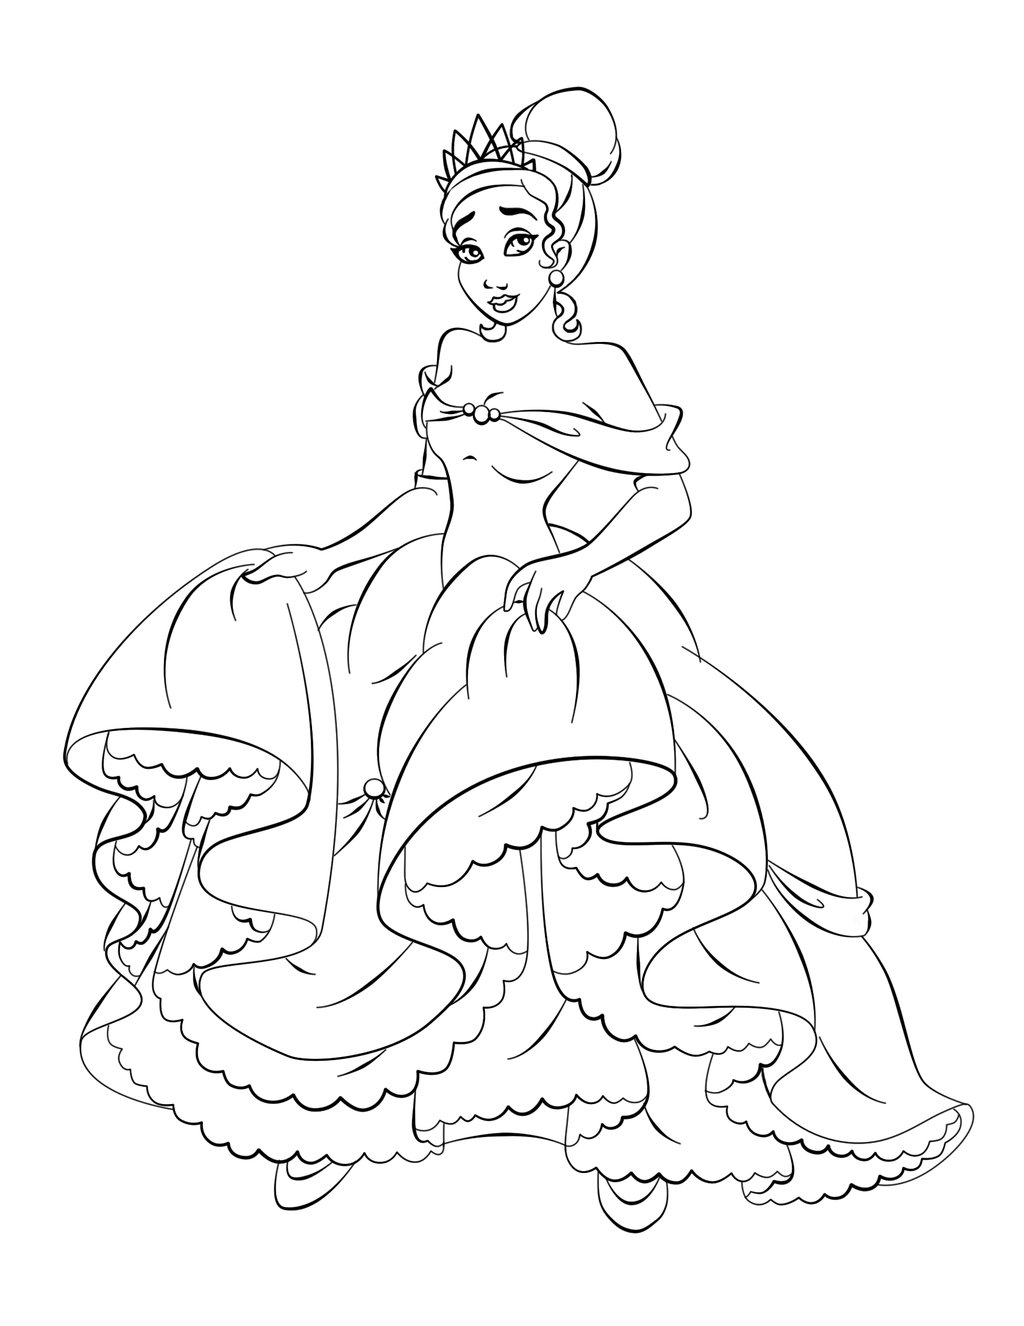 image relating to Printable Princess Coloring Pages referred to as Princess Coloring Web pages - Excellent Coloring Internet pages For Little ones